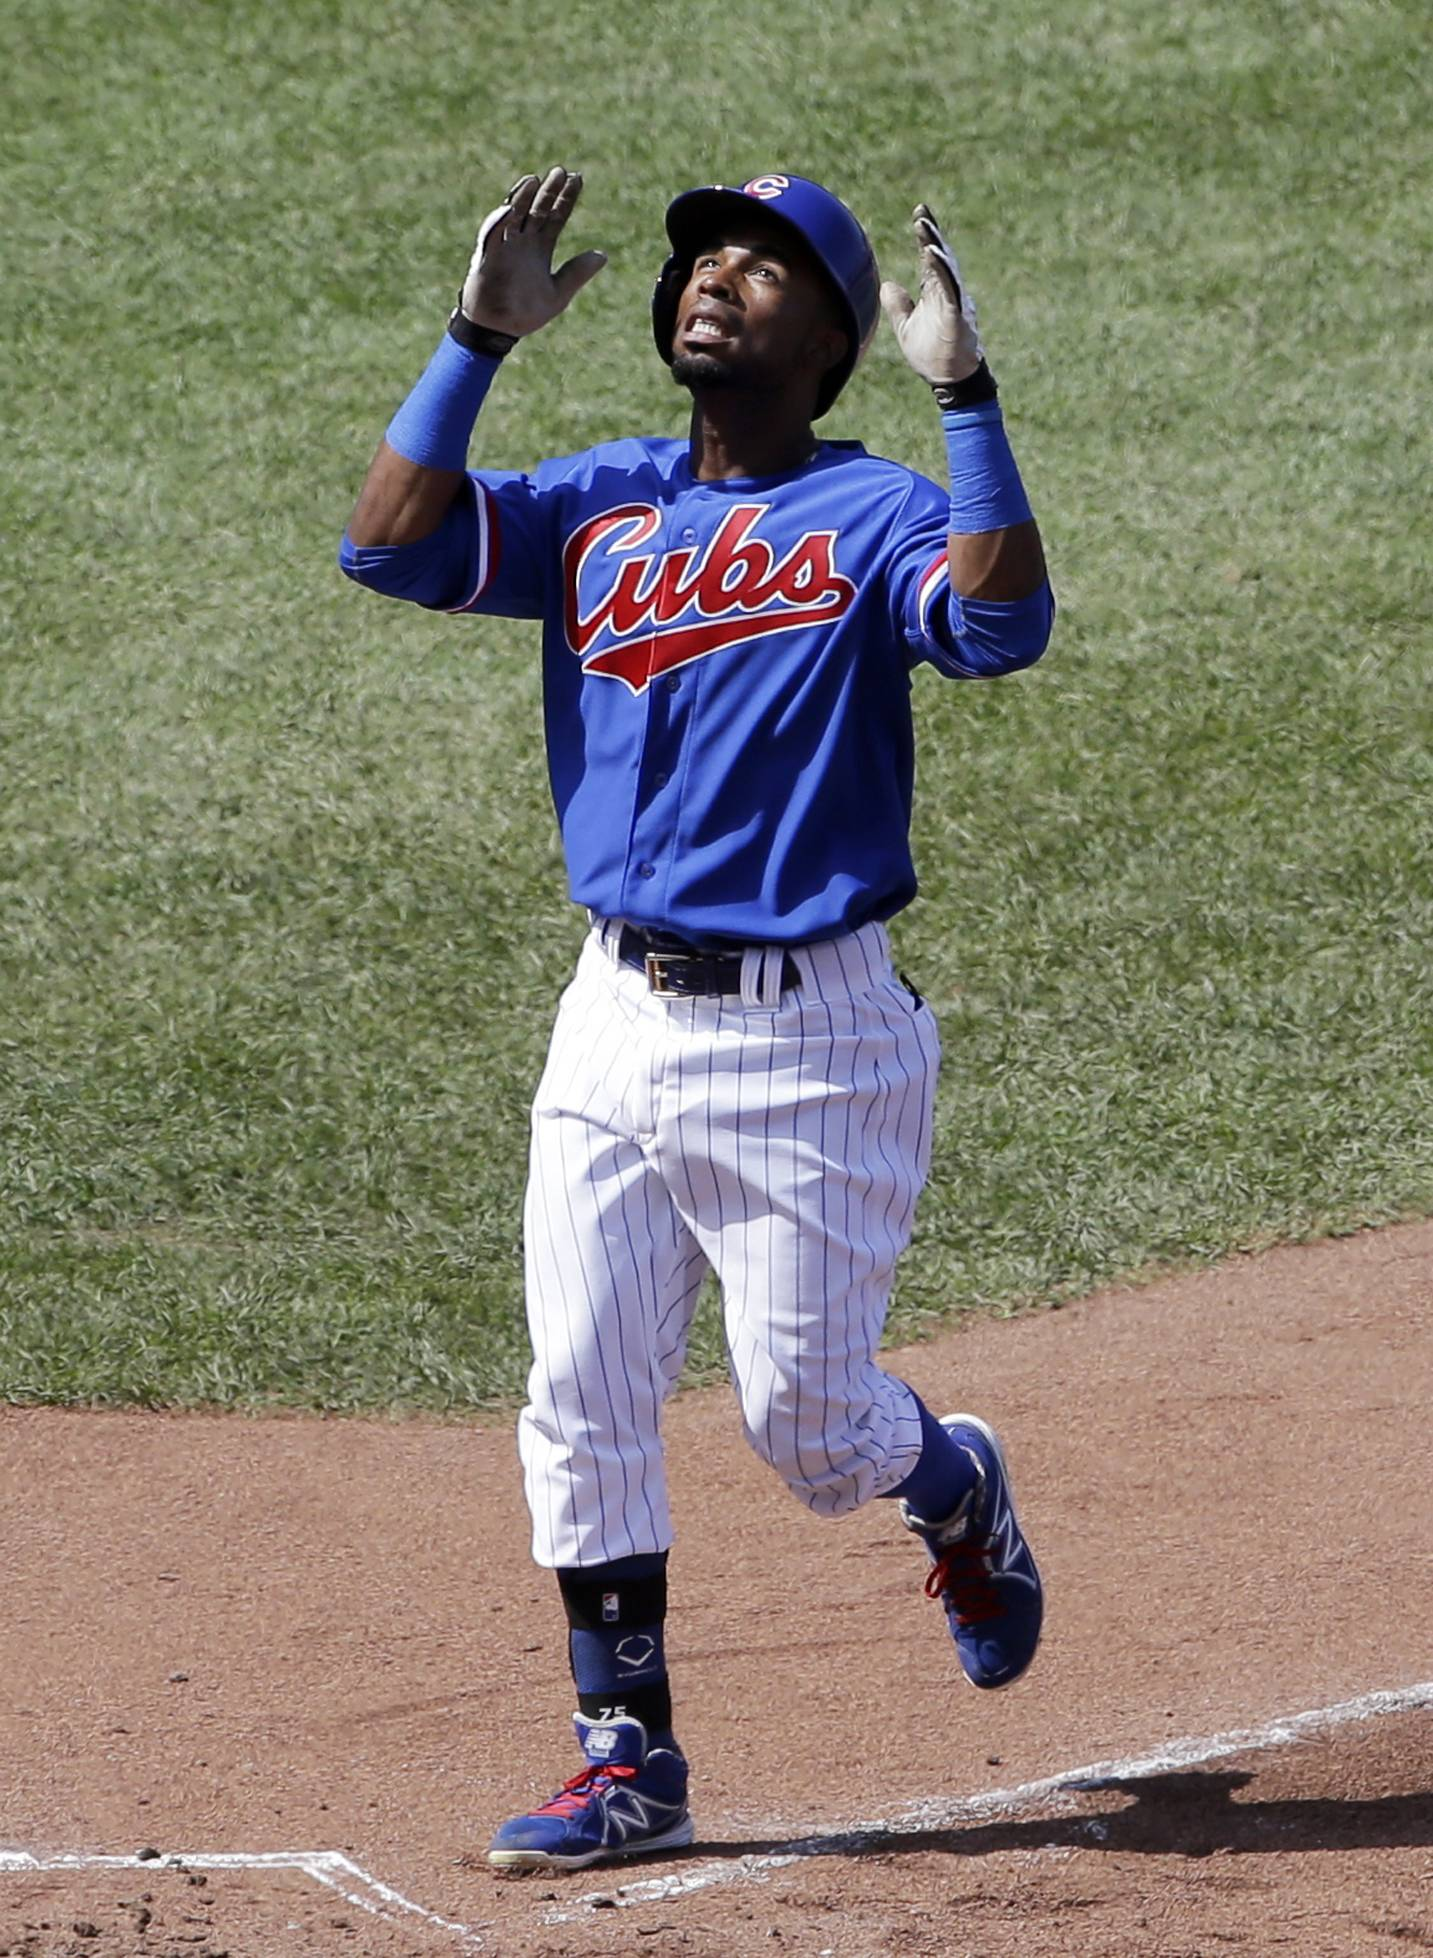 Chicago Cubs' Arismendy Alcantara celebrates after hitting a solo home run during the fifth inning against the Baltimore Orioles in Chicago, Sunday.